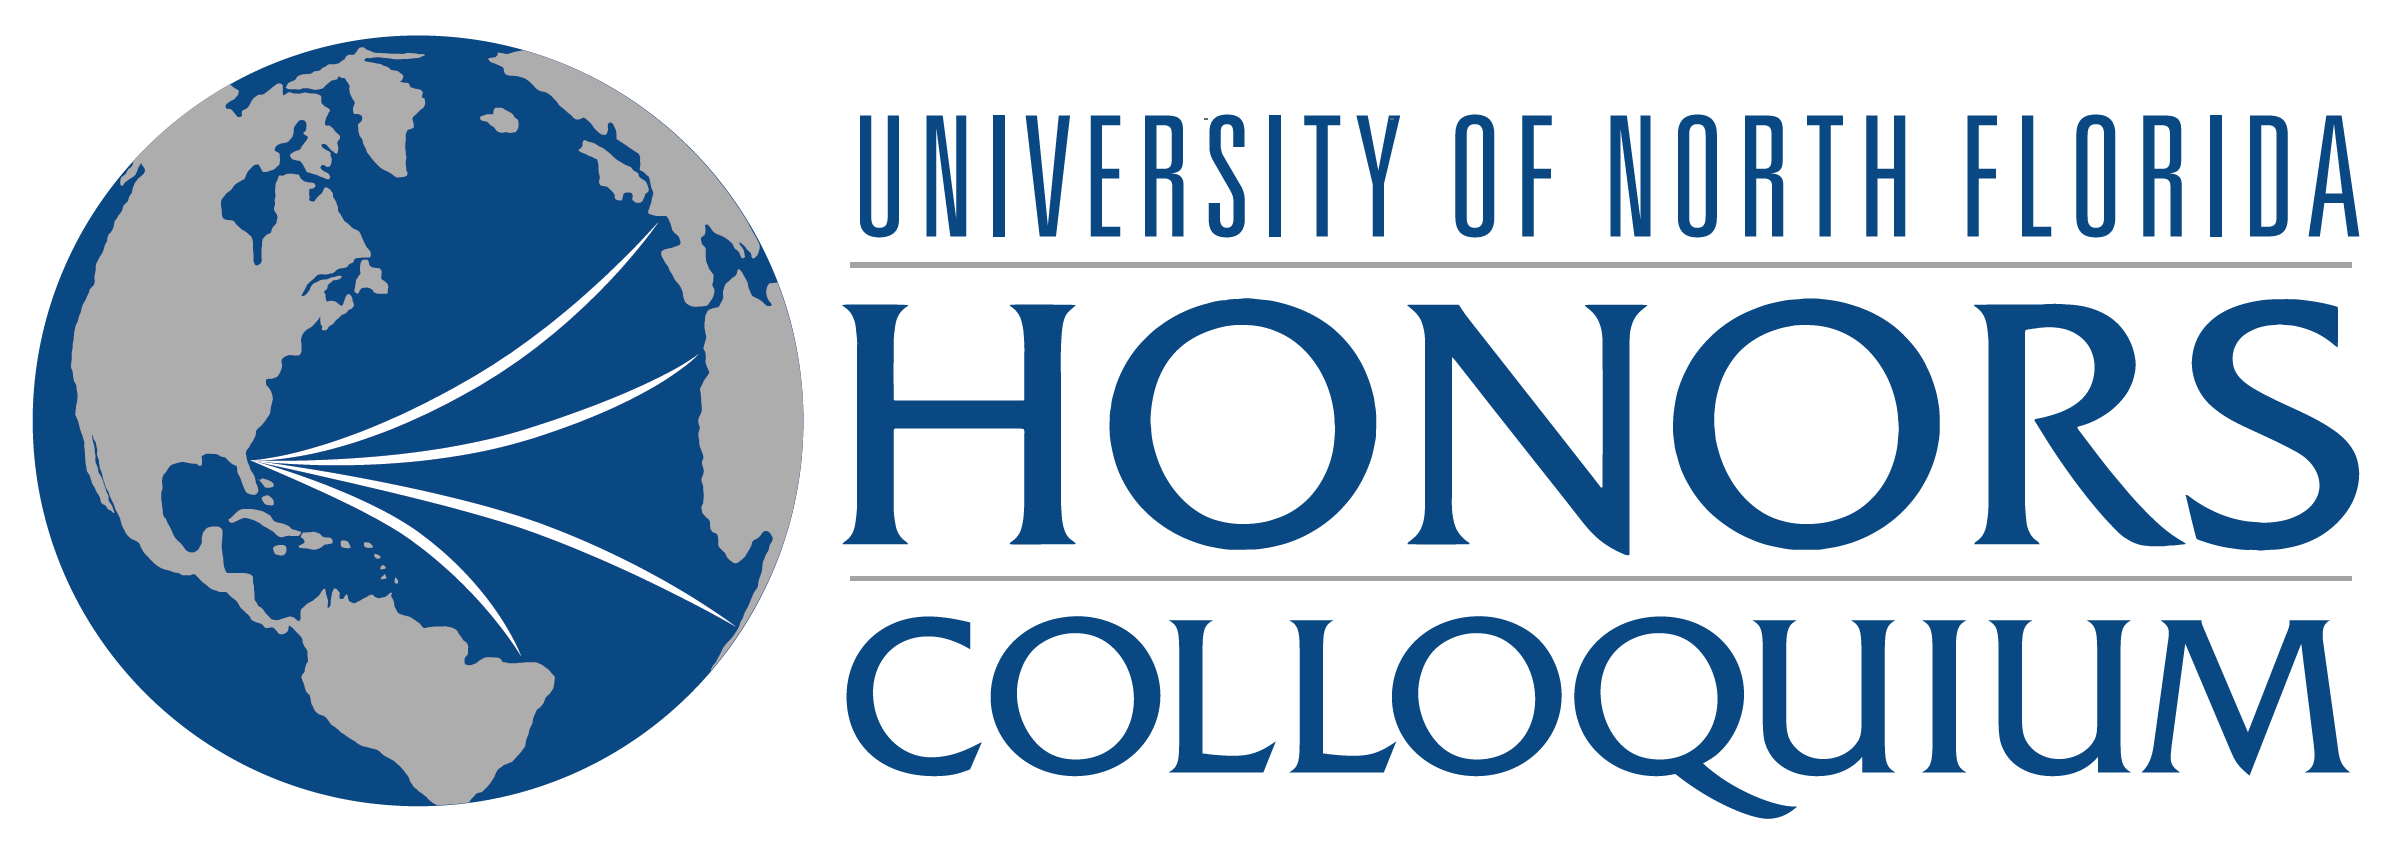 University of North Florida - Honors Colloquium